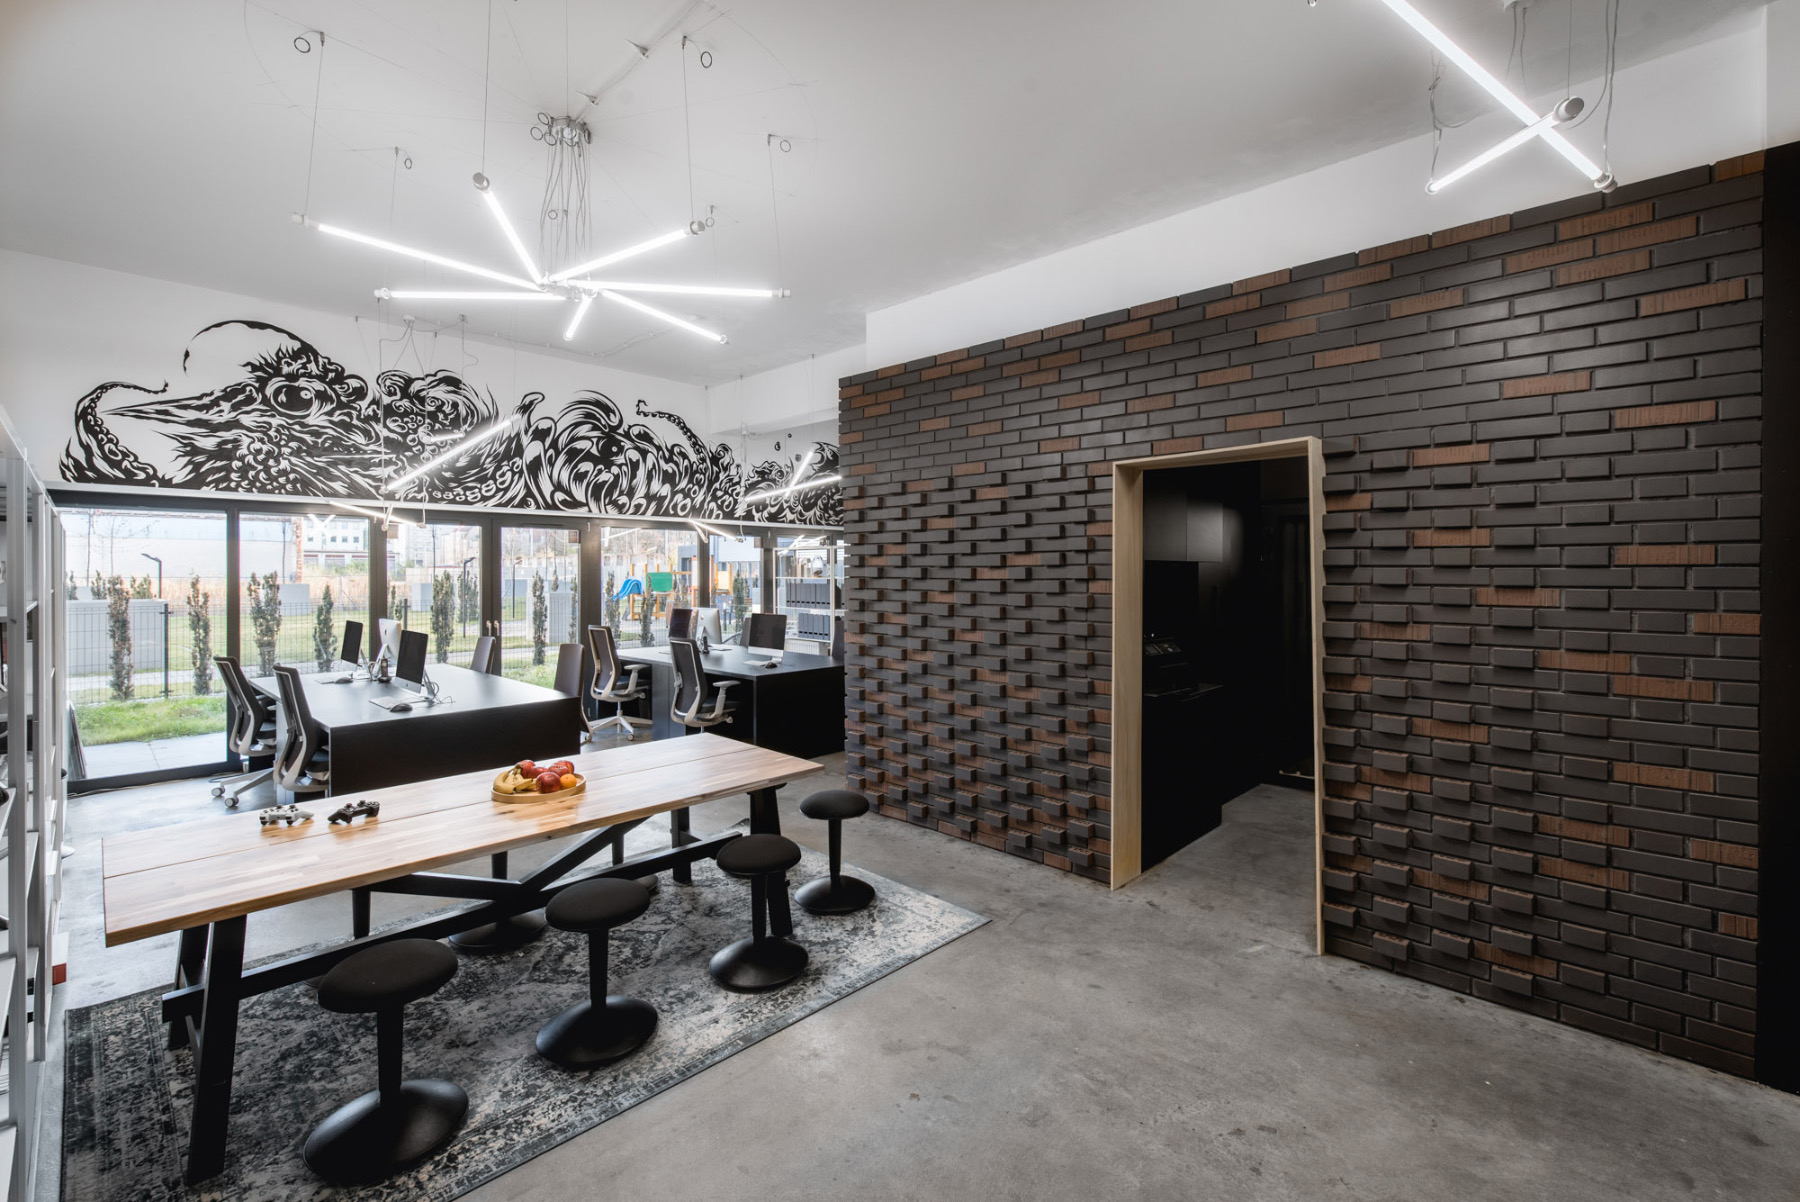 A Tour of mode:lina's New Poznan Office